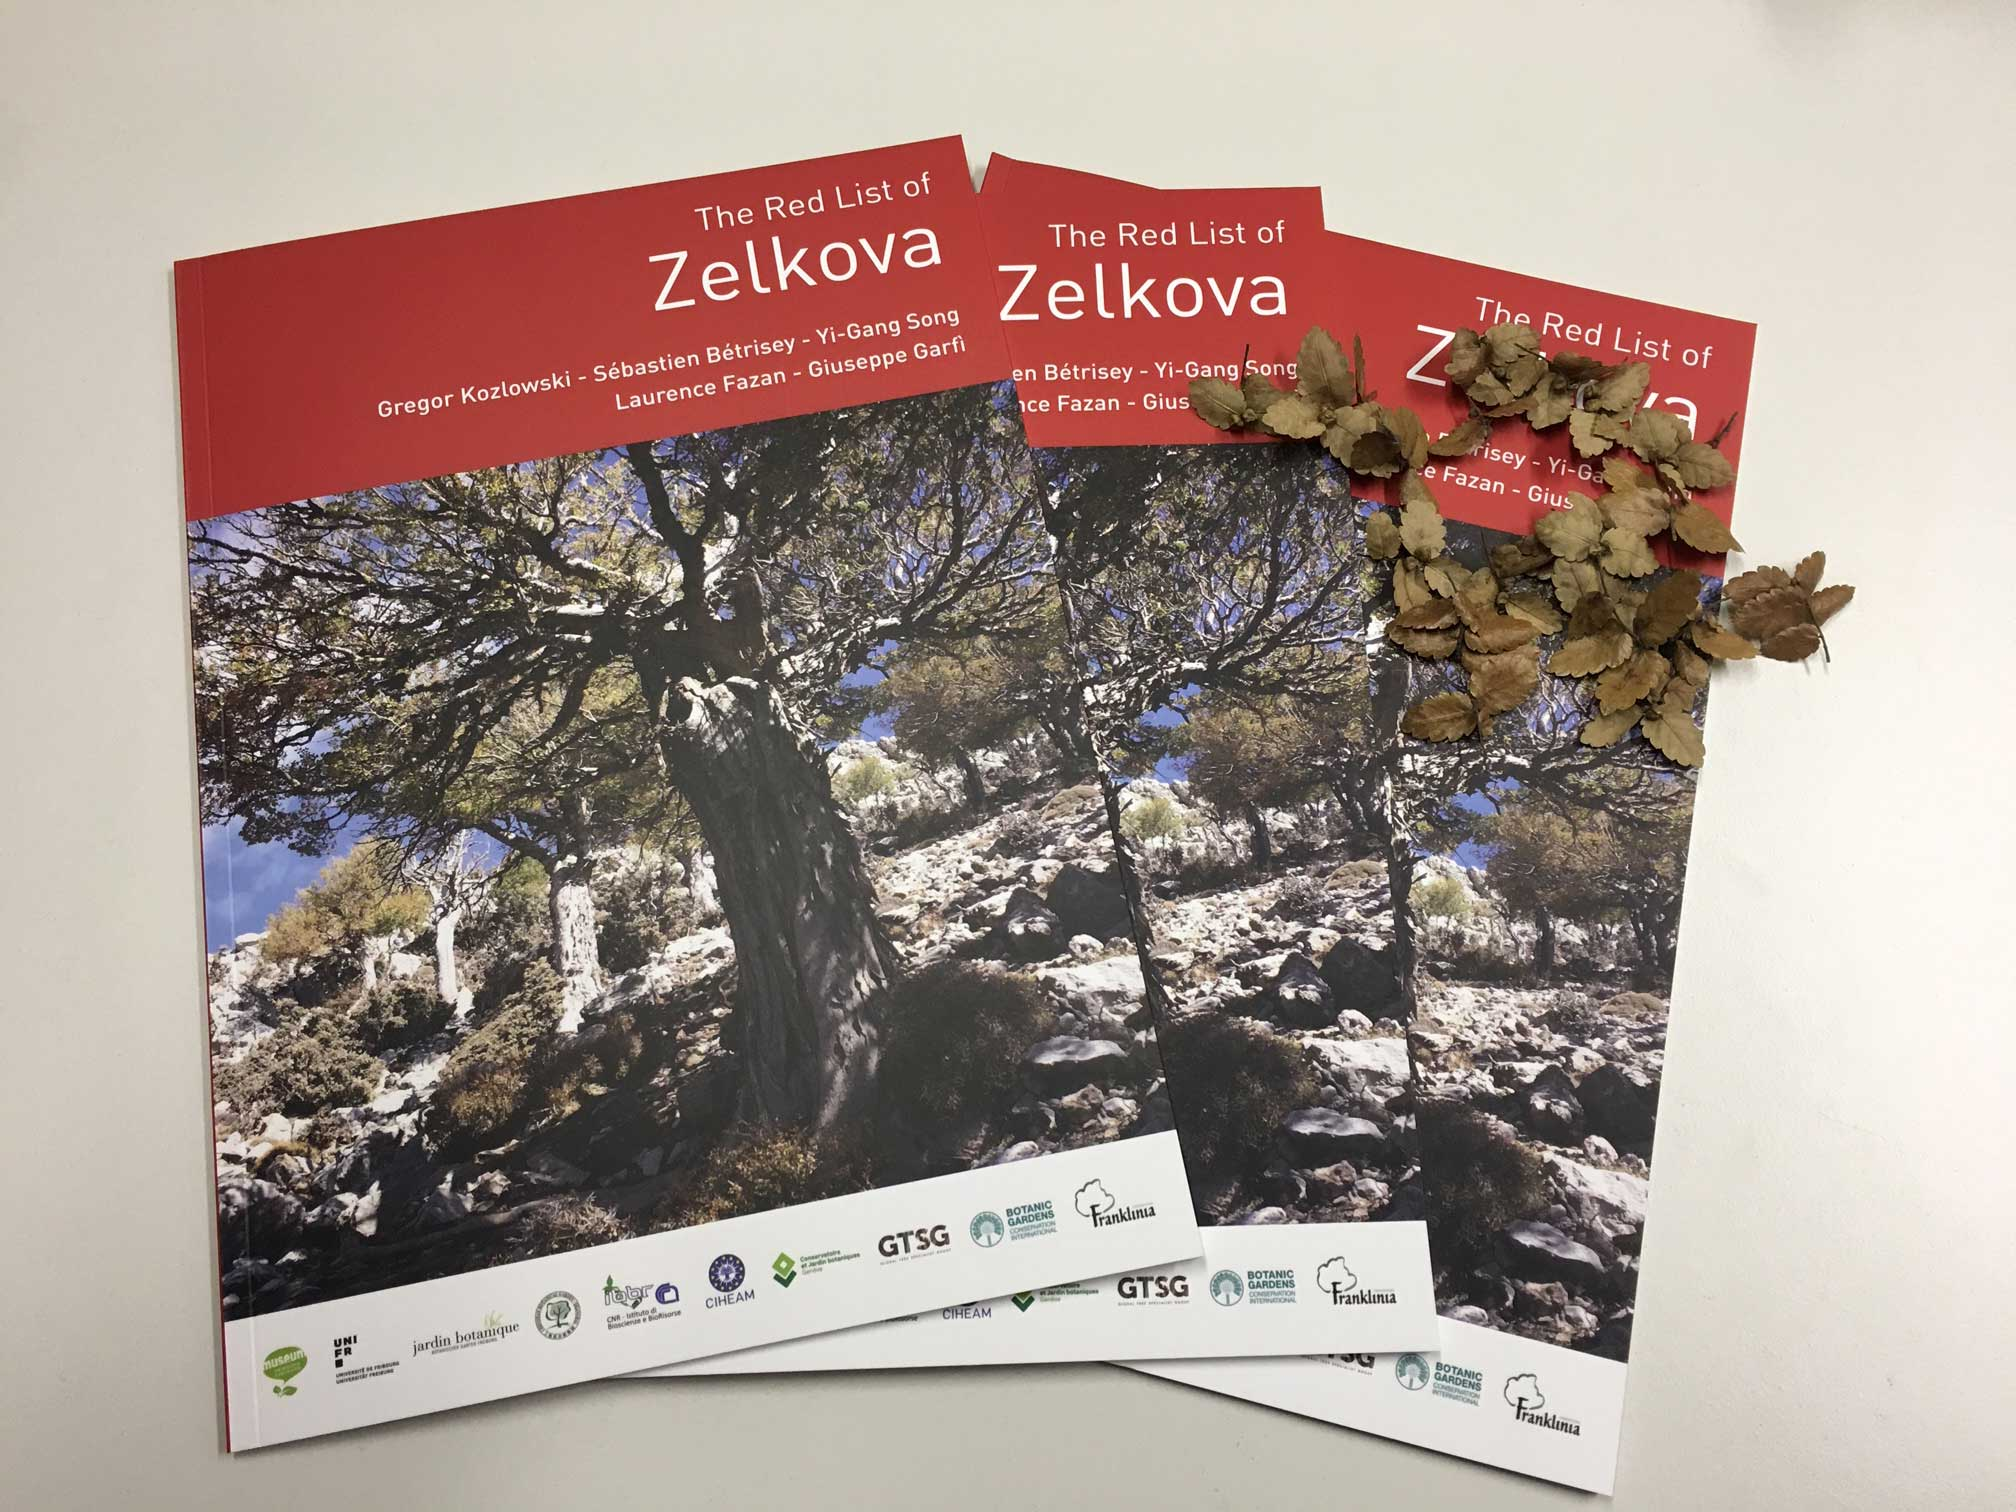 The Red List of Zelkova 2019